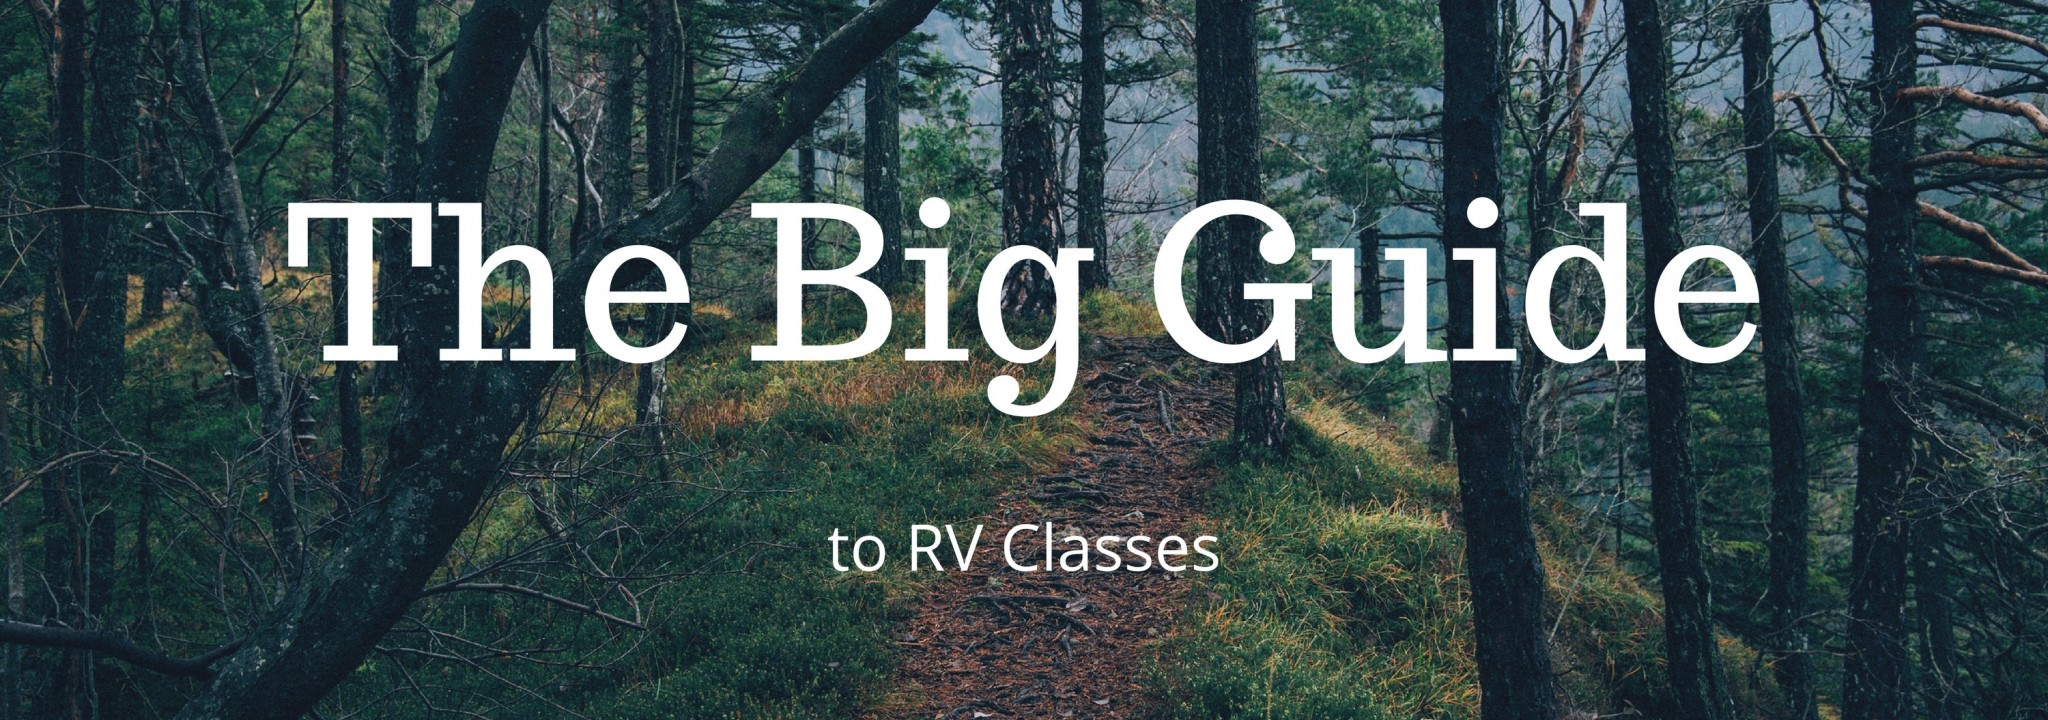 The big Outdoorsy guide to RV classes